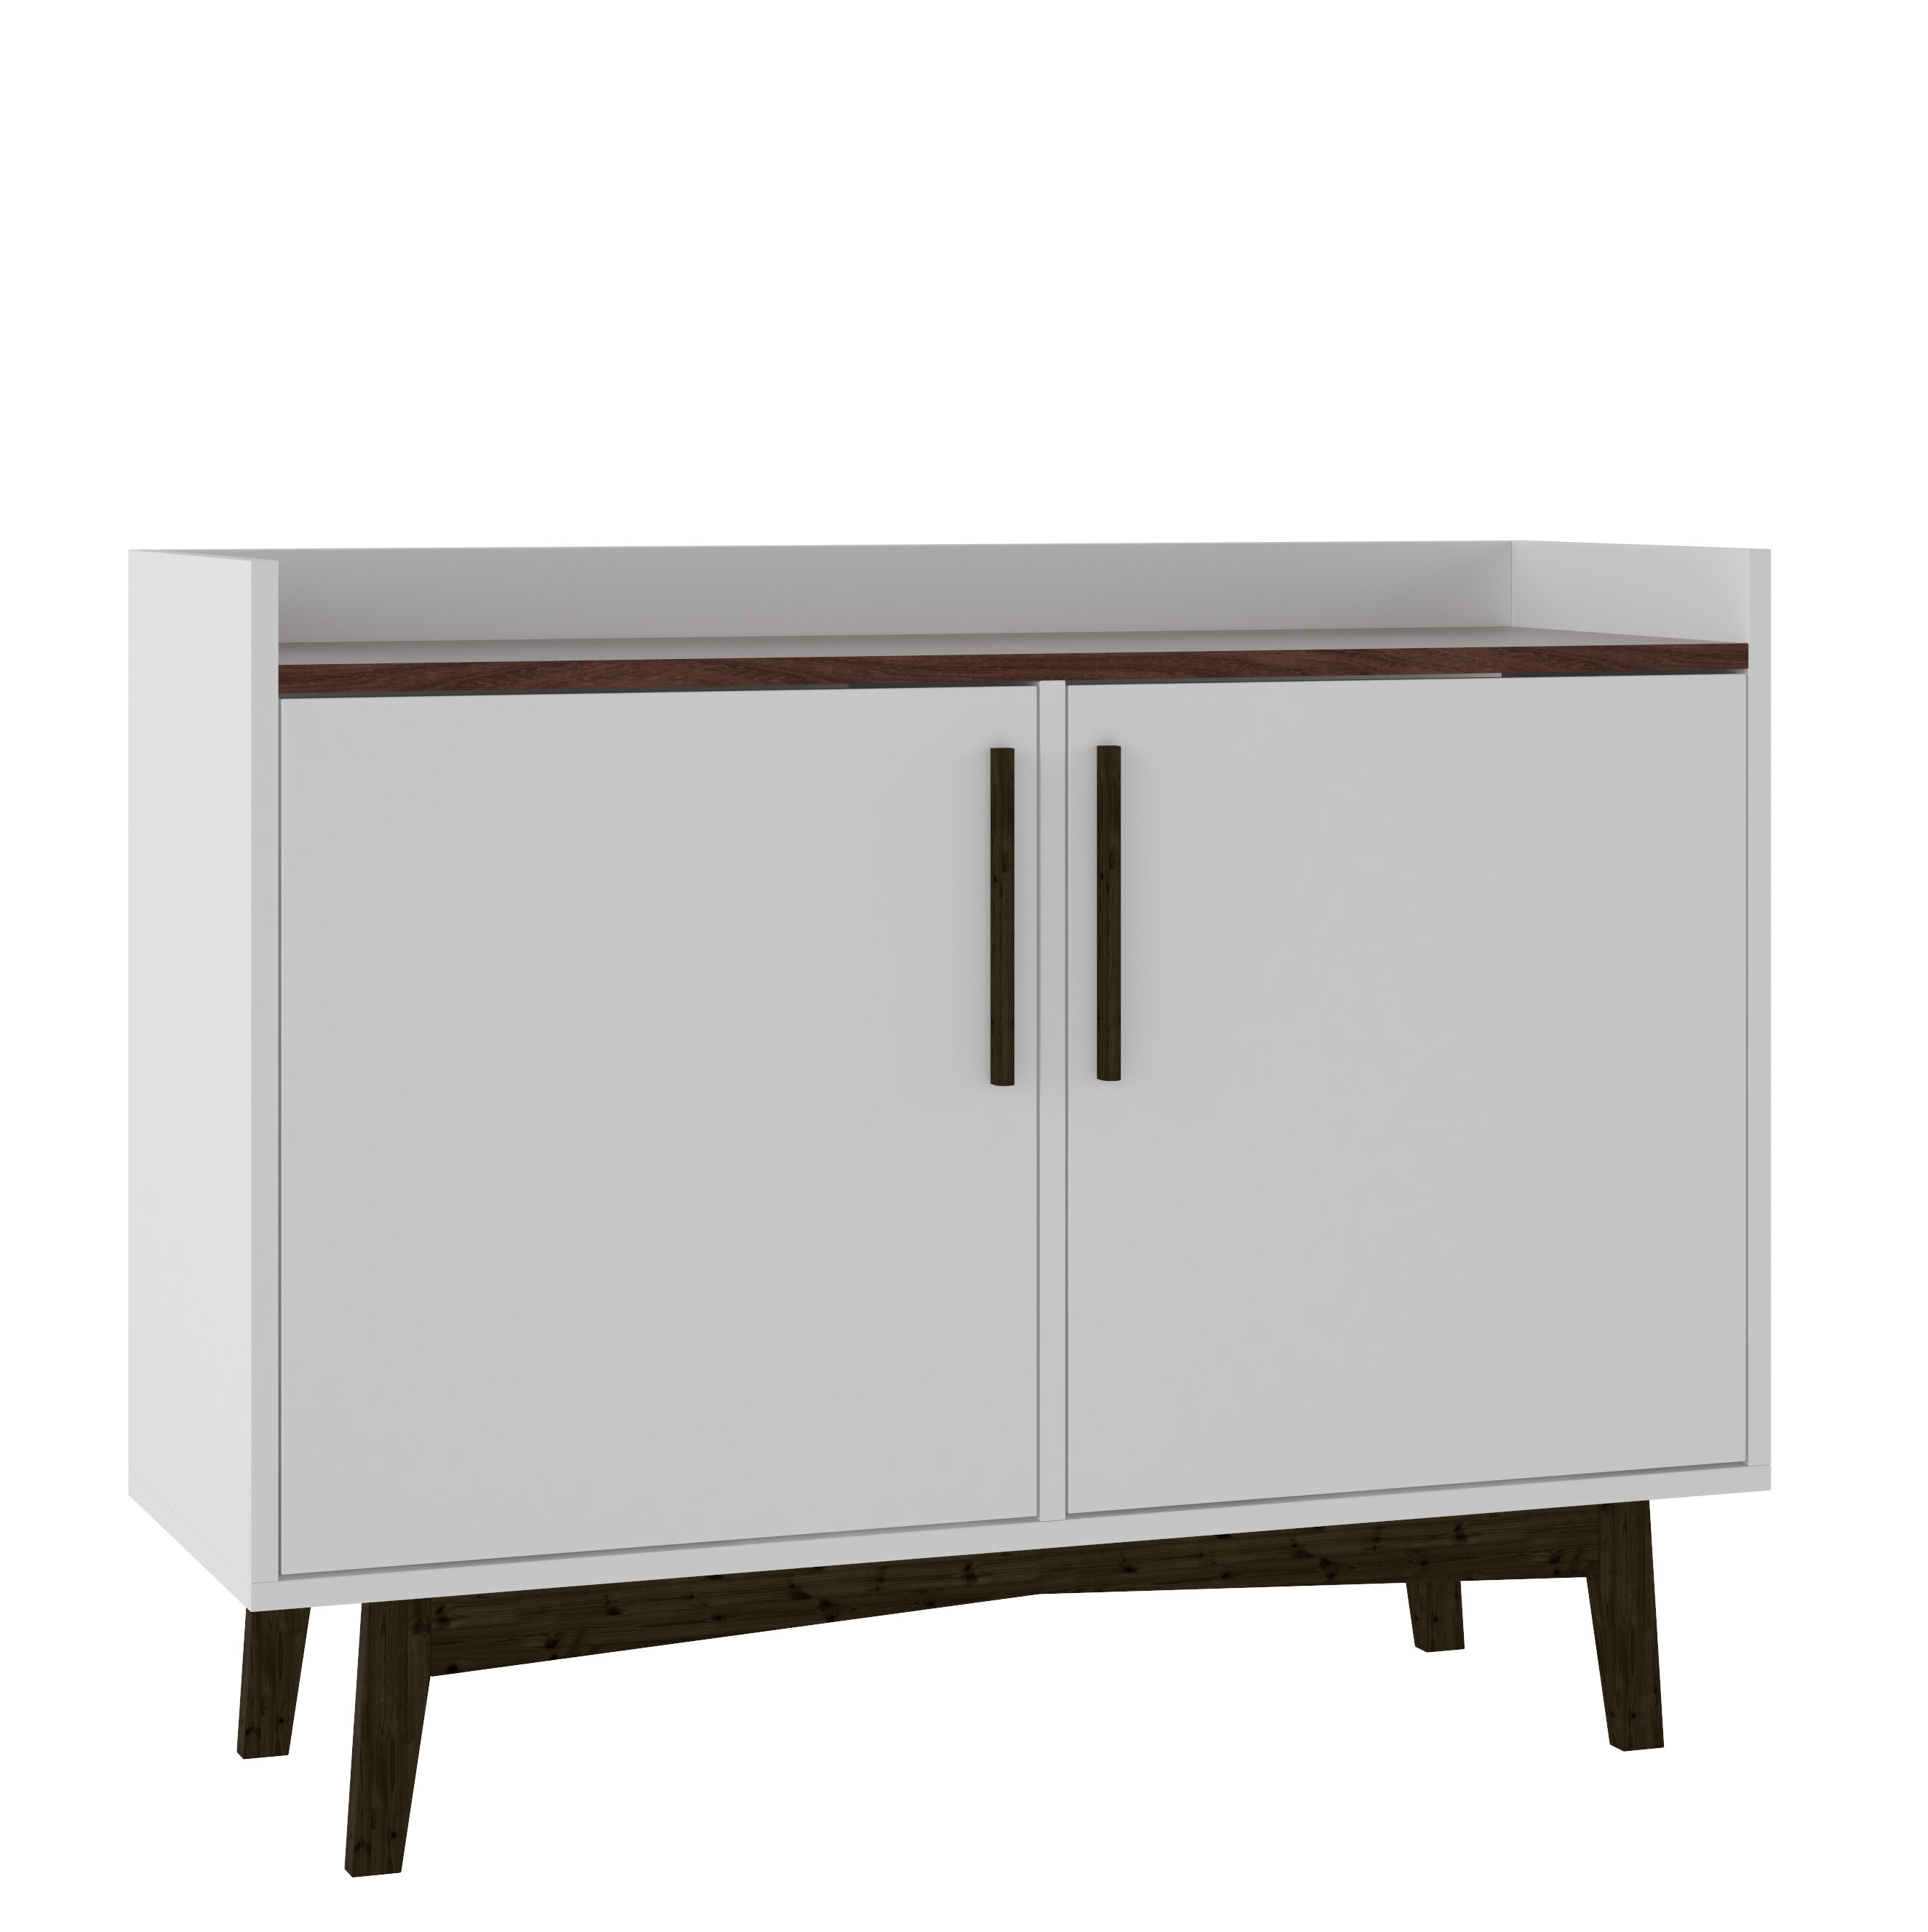 Headrick Mid Century Modern Sideboard with Mid-Century Brown And Grey Sideboards (Image 12 of 30)